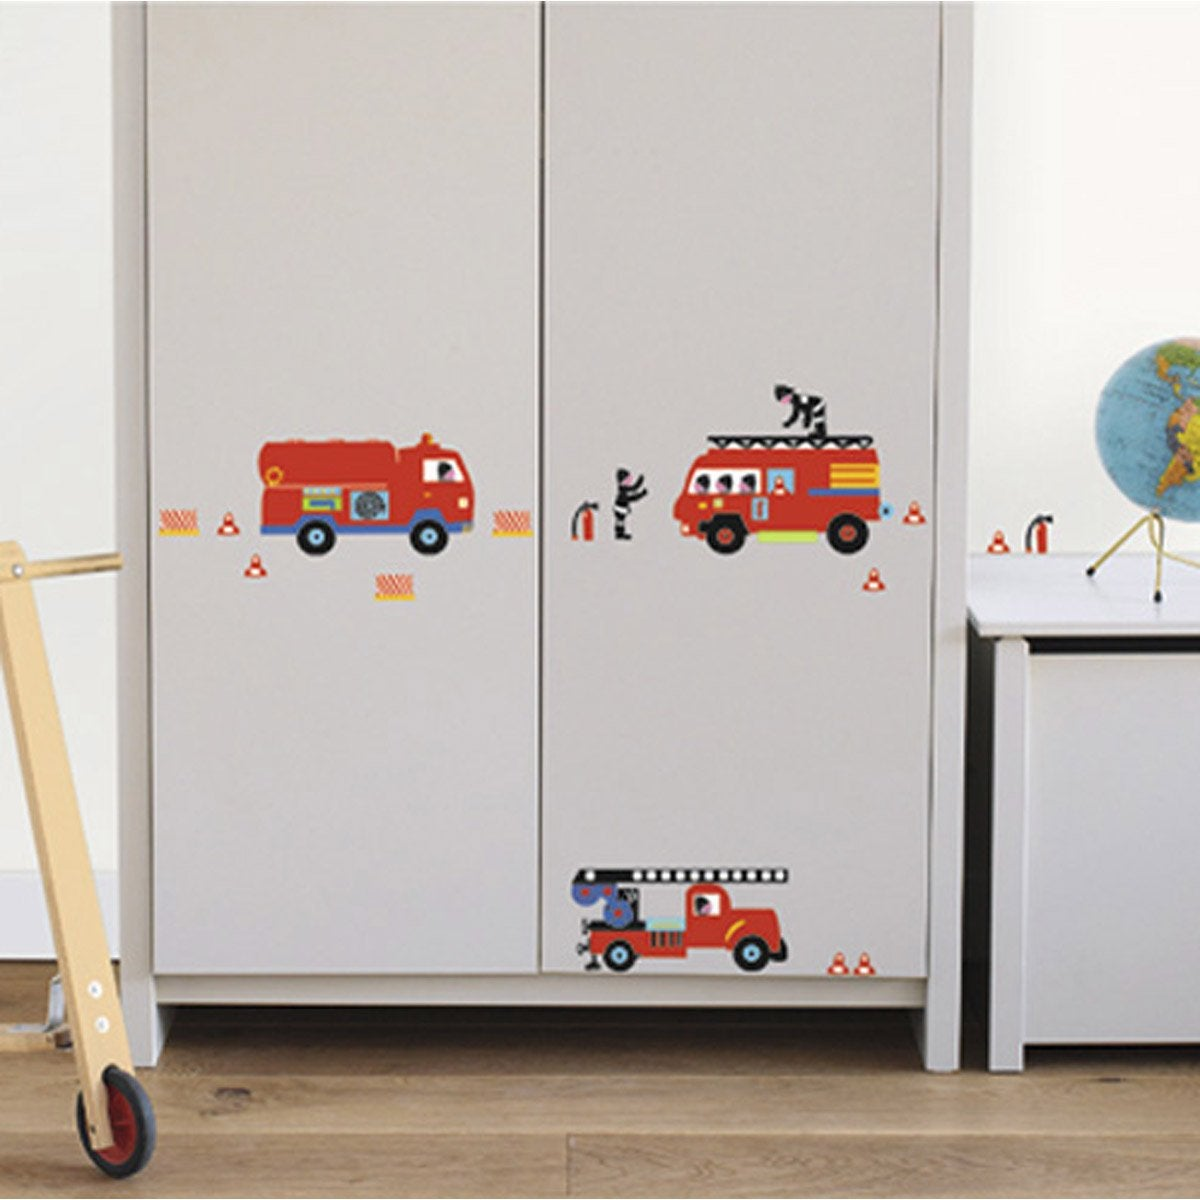 sticker camion de pompiers 24 cm x 36 cm leroy merlin. Black Bedroom Furniture Sets. Home Design Ideas